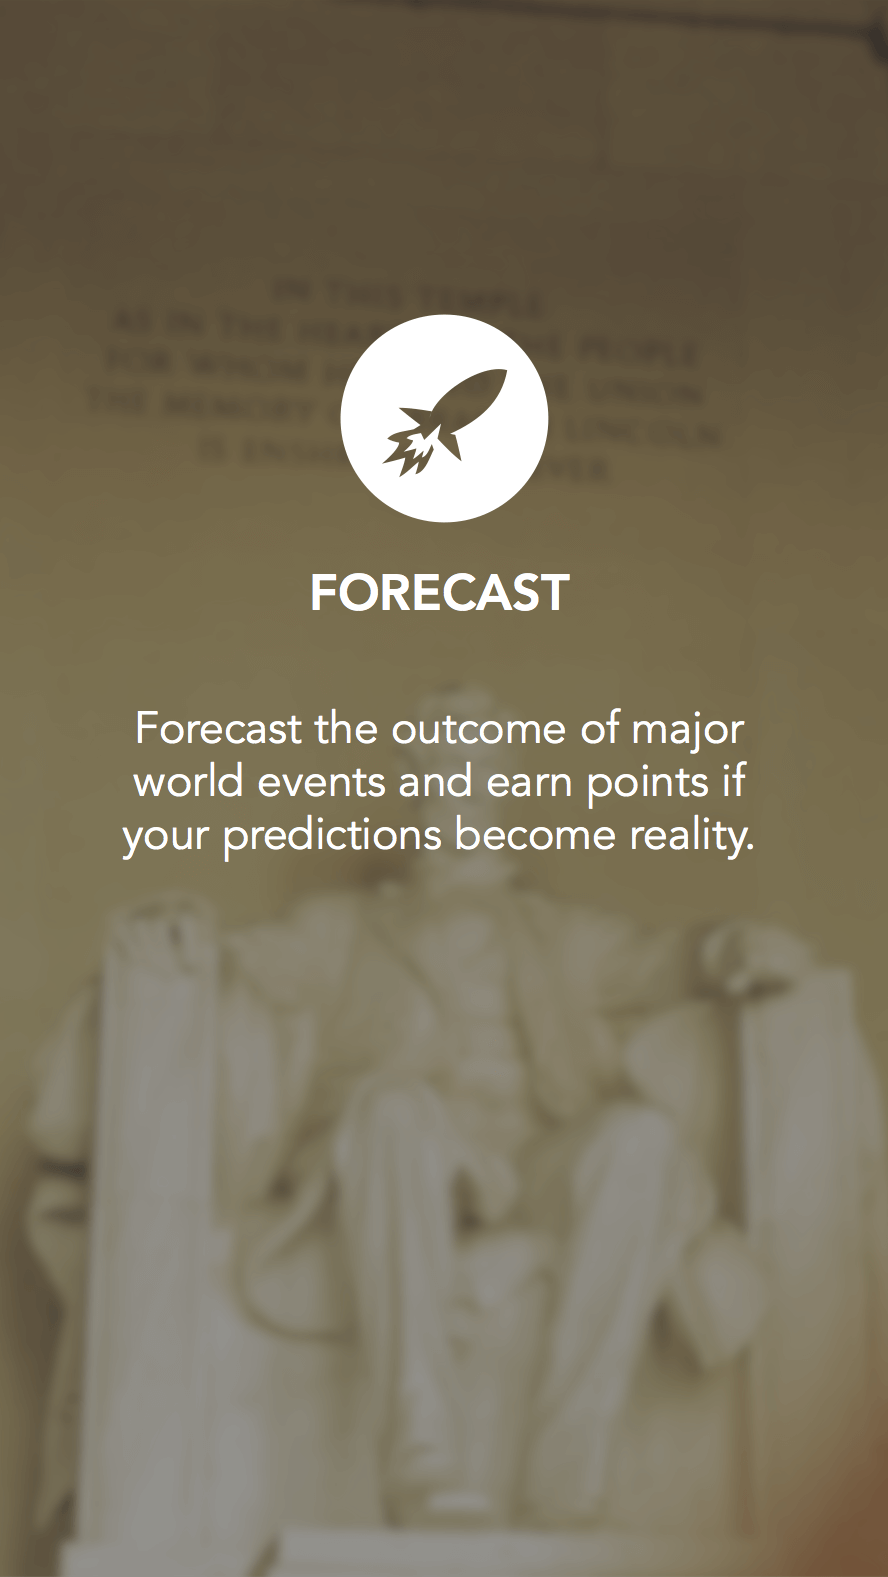 forecast screen